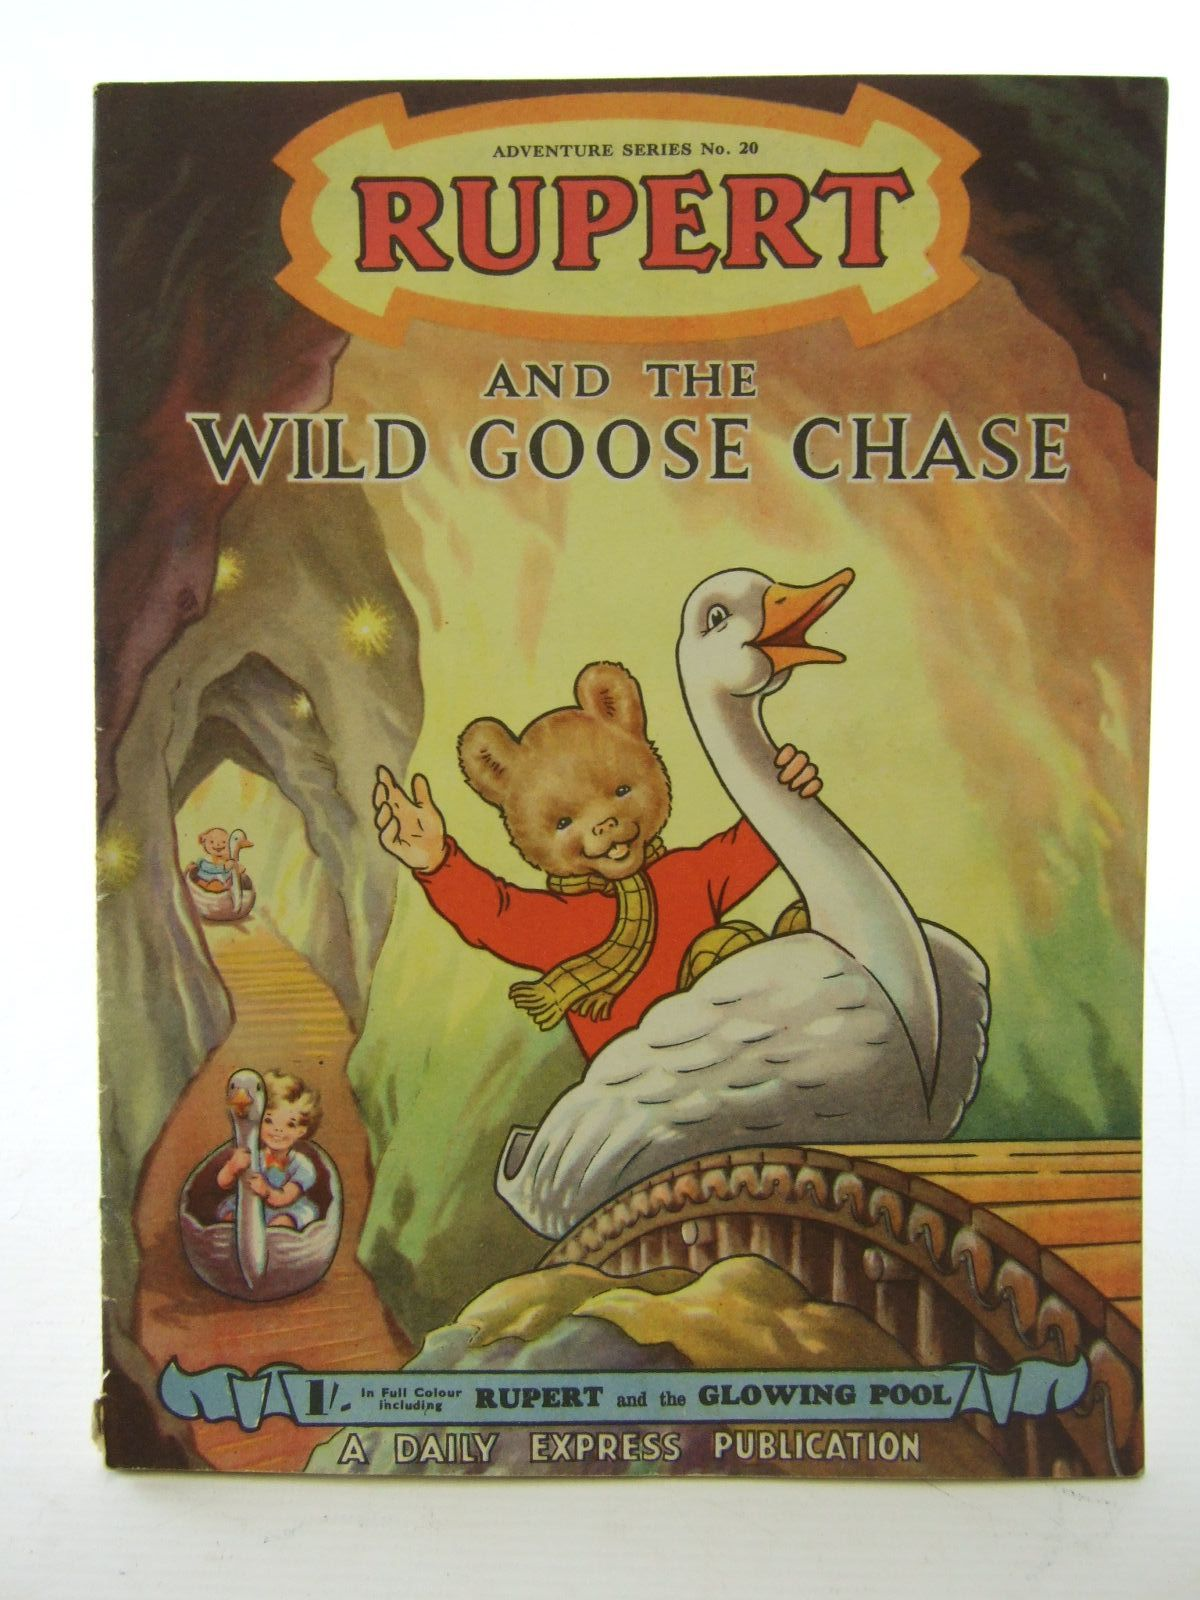 Photo of RUPERT ADVENTURE SERIES No. 20 - RUPERT AND THE WILD GOOSE CHASE written by Bestall, Alfred illustrated by Bestall, Alfred published by Daily Express (STOCK CODE: 1706110)  for sale by Stella & Rose's Books